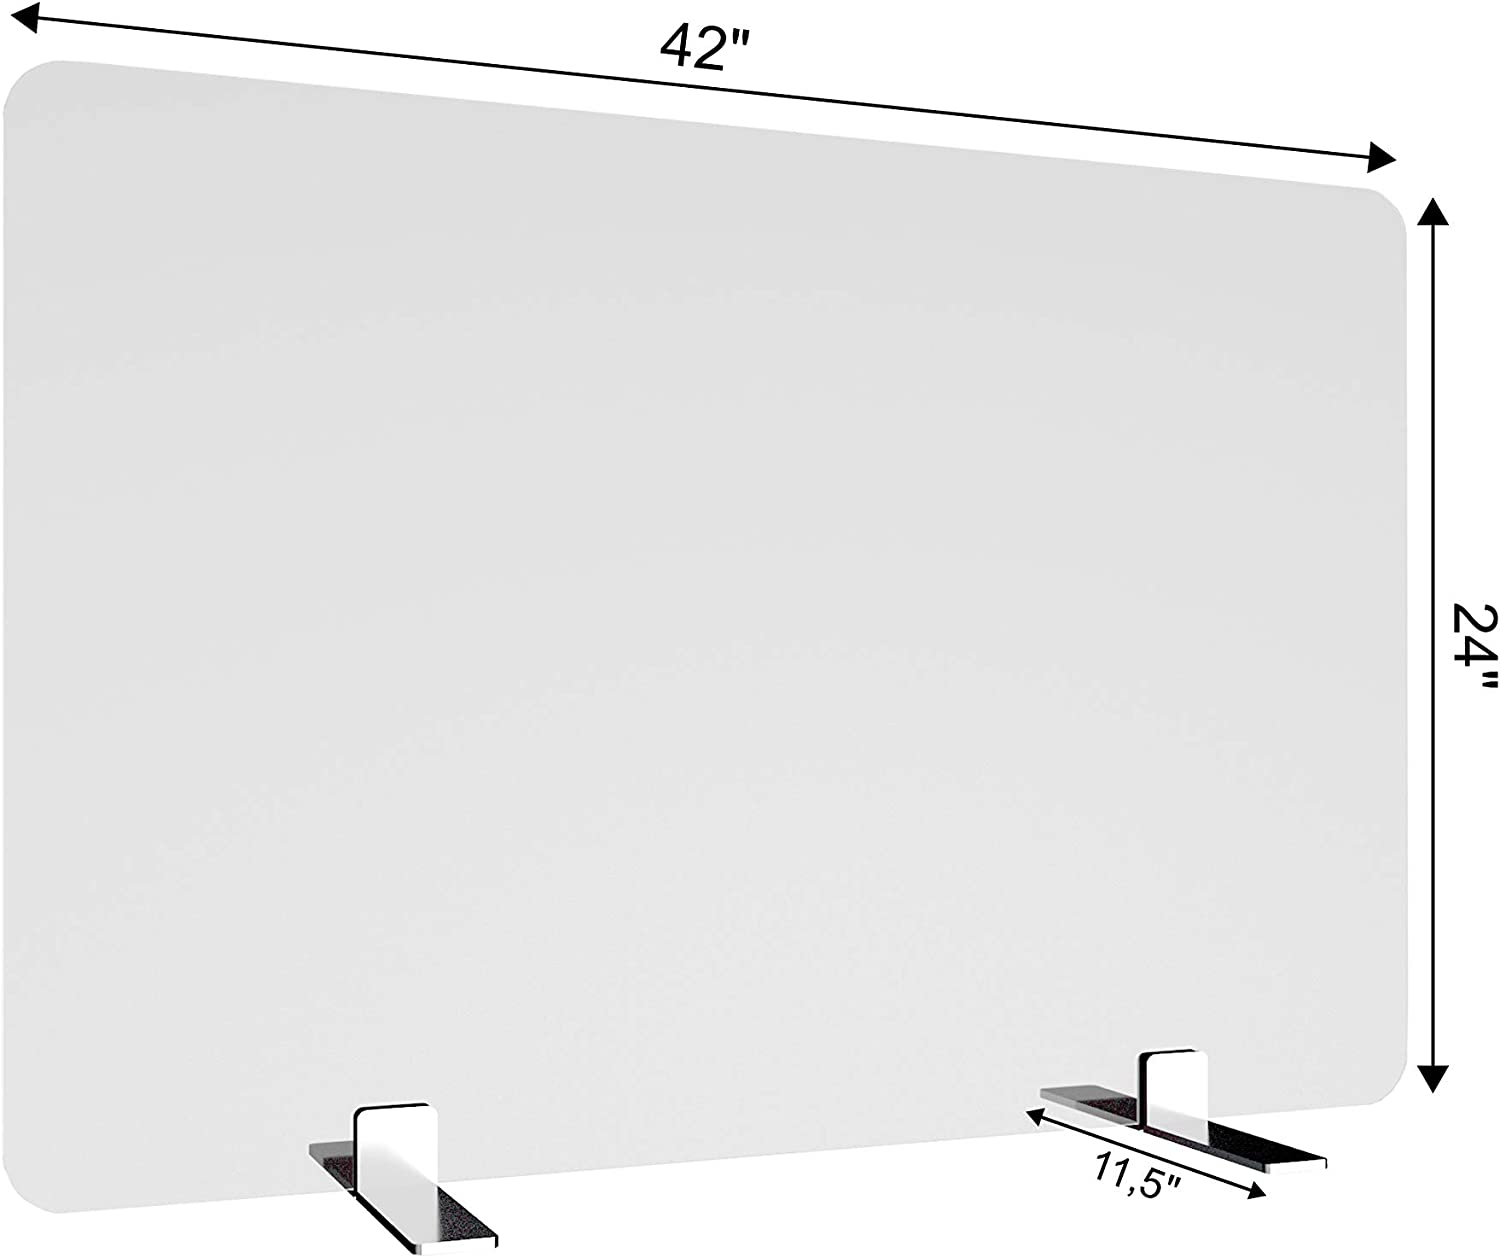 Free-Standing Acrylic Protective Guard for Countertops w/Medium 11.5 inches Flat Legs, Office Desk Partition Panels, Protective Barriers for Workspace (42